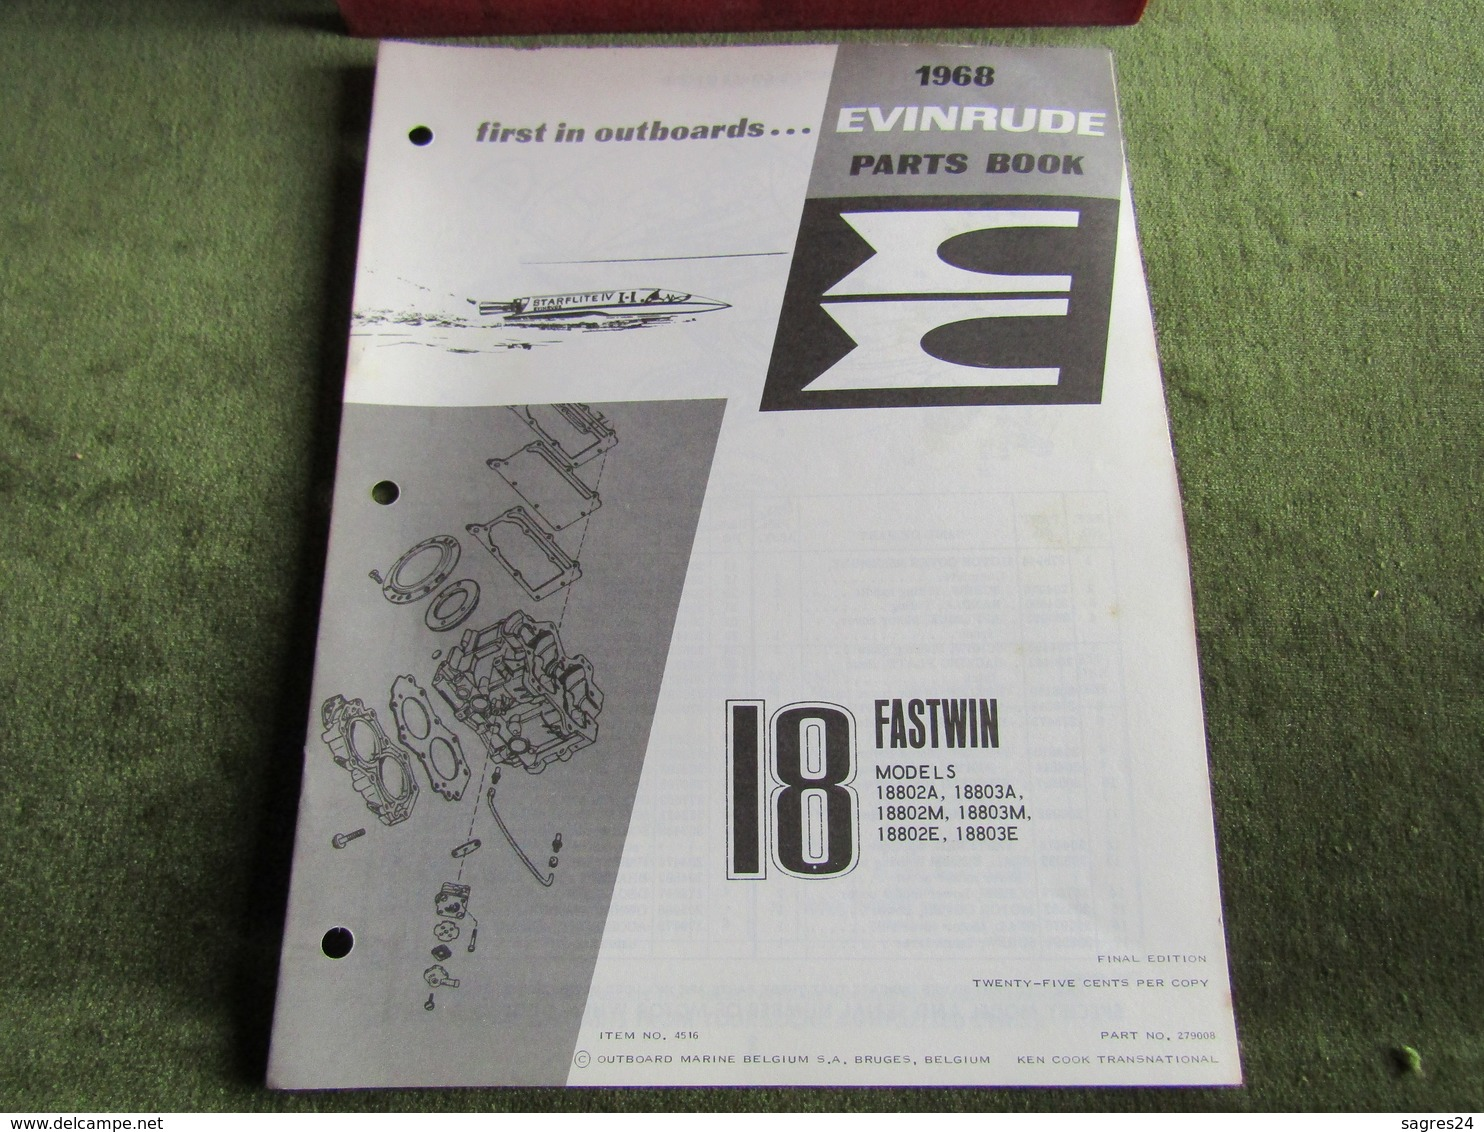 Evinrude Outboard 18 Fasttwin Model S Parts Book 1968 - Boats